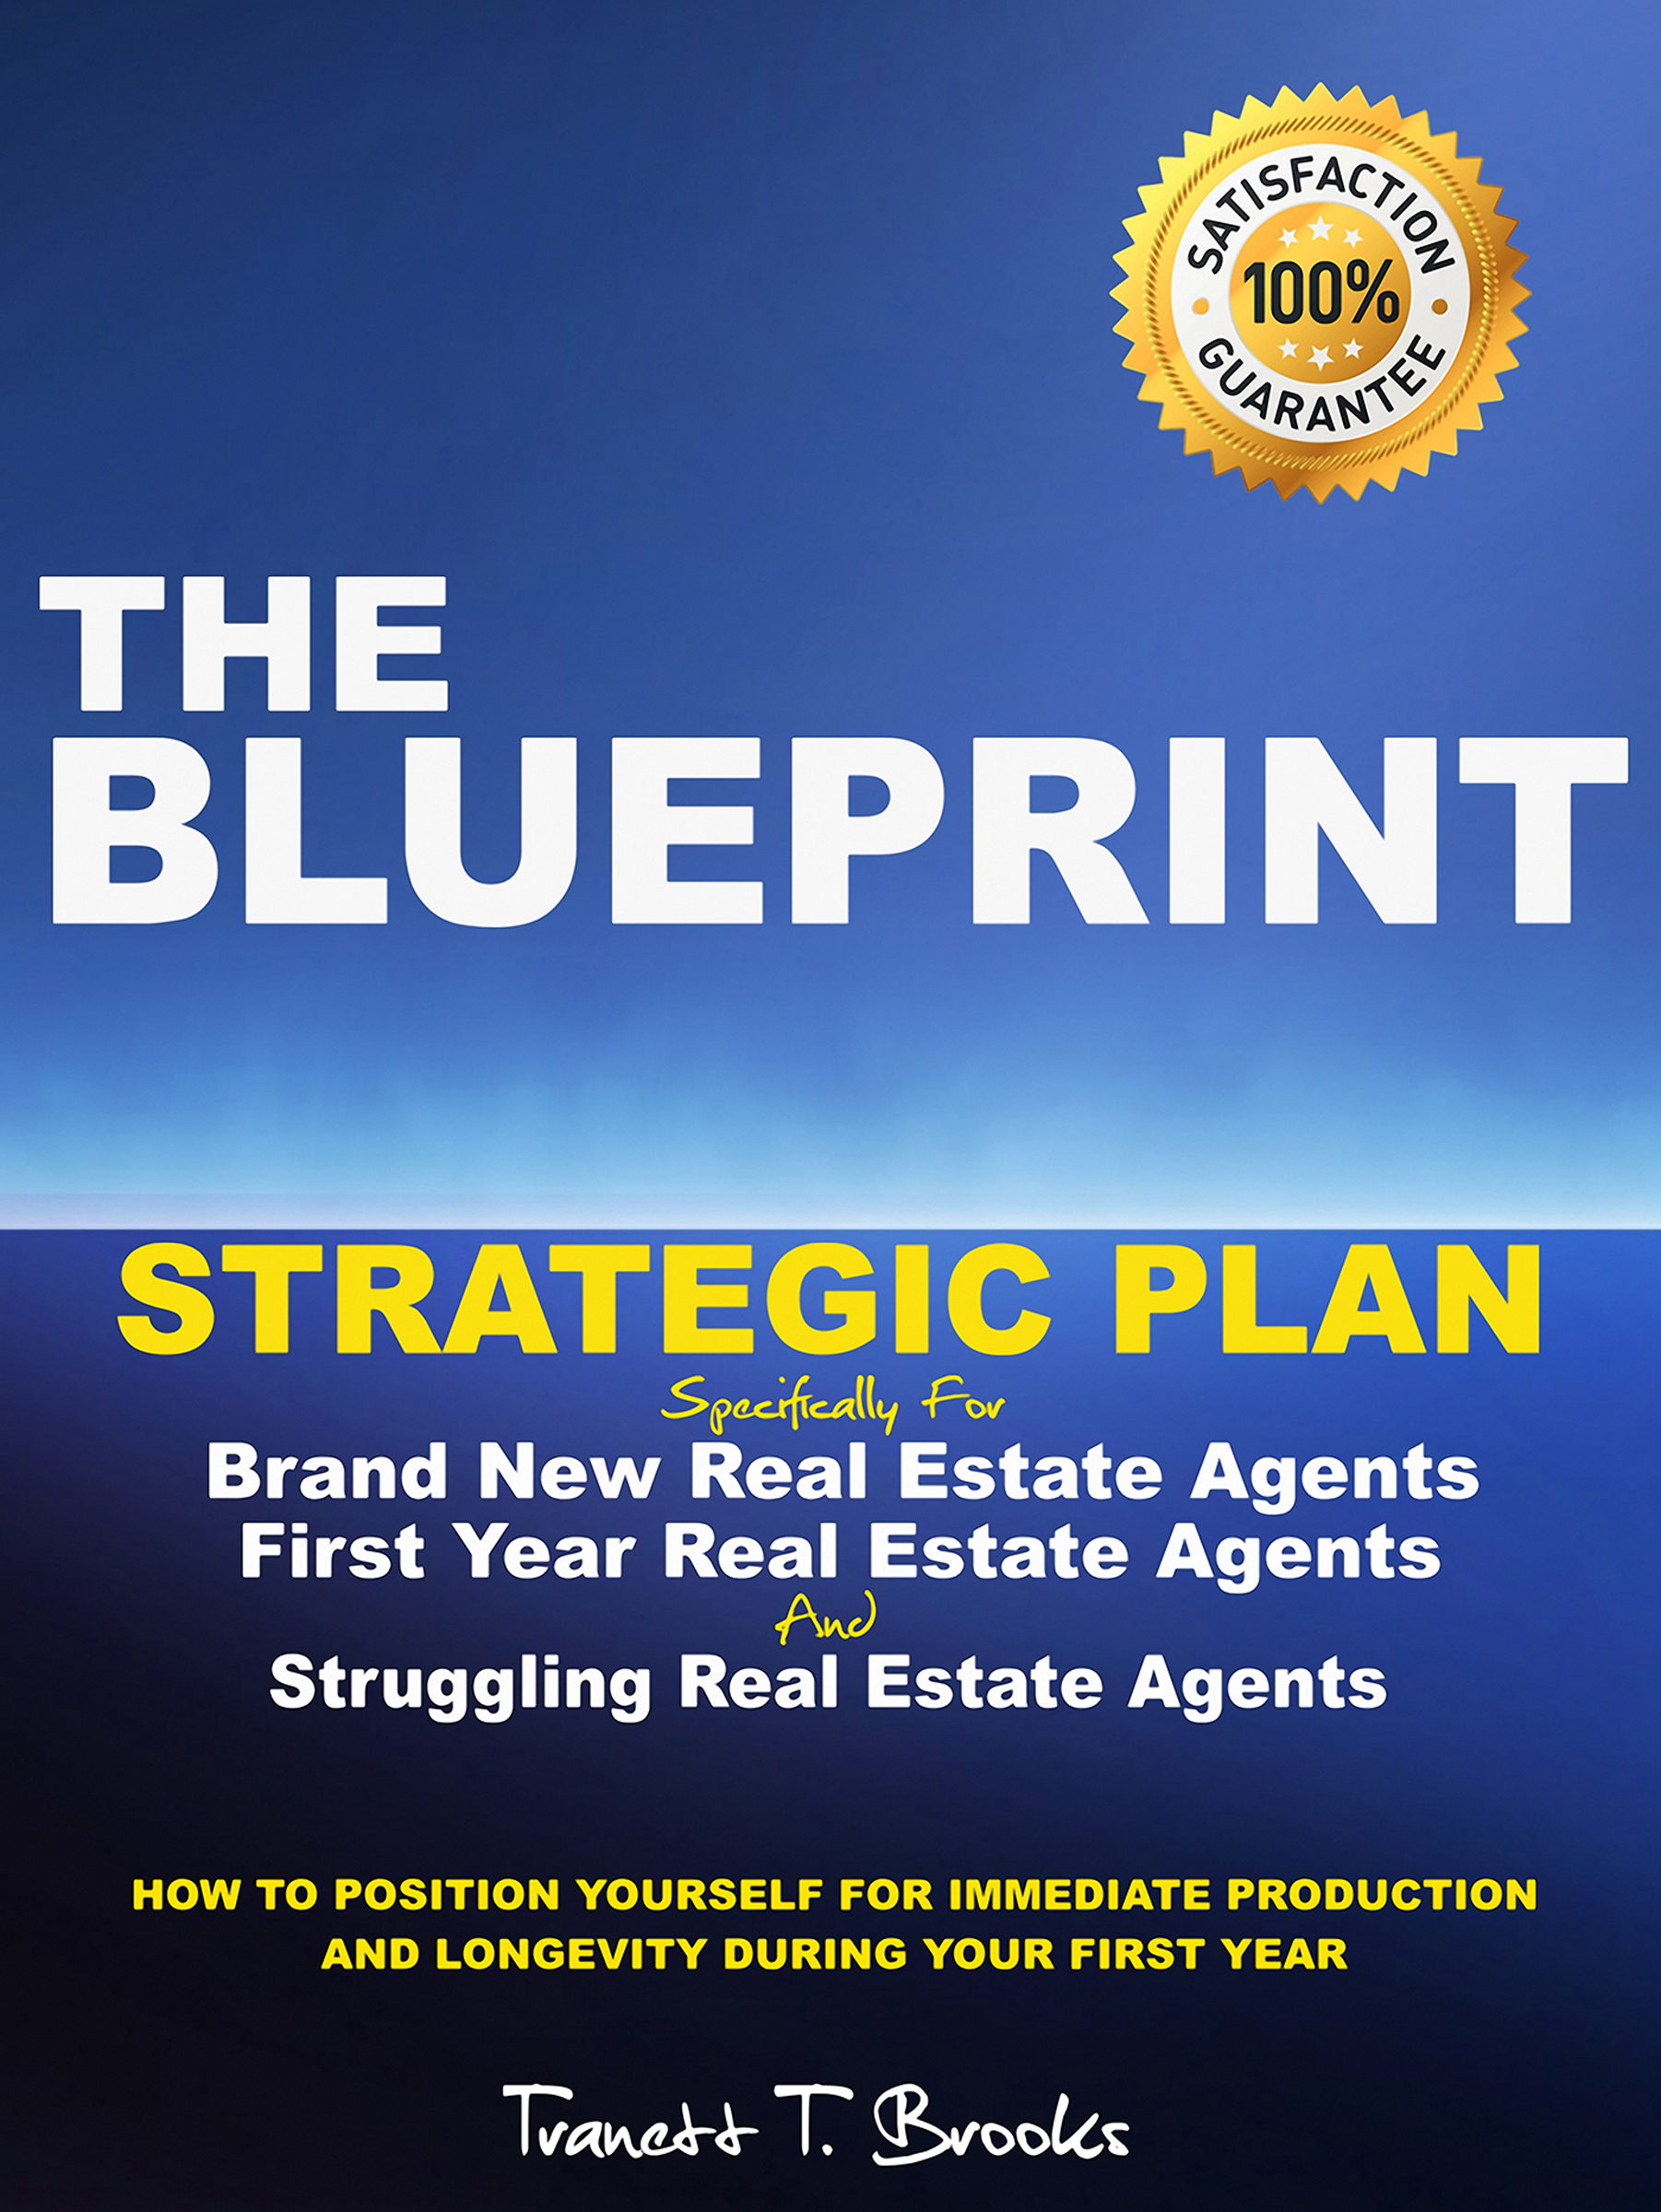 The blueprint ebook tranett t brooks descargar libro pdf o epub the blueprint ebook tranett t brooks 9781483529516 malvernweather Image collections